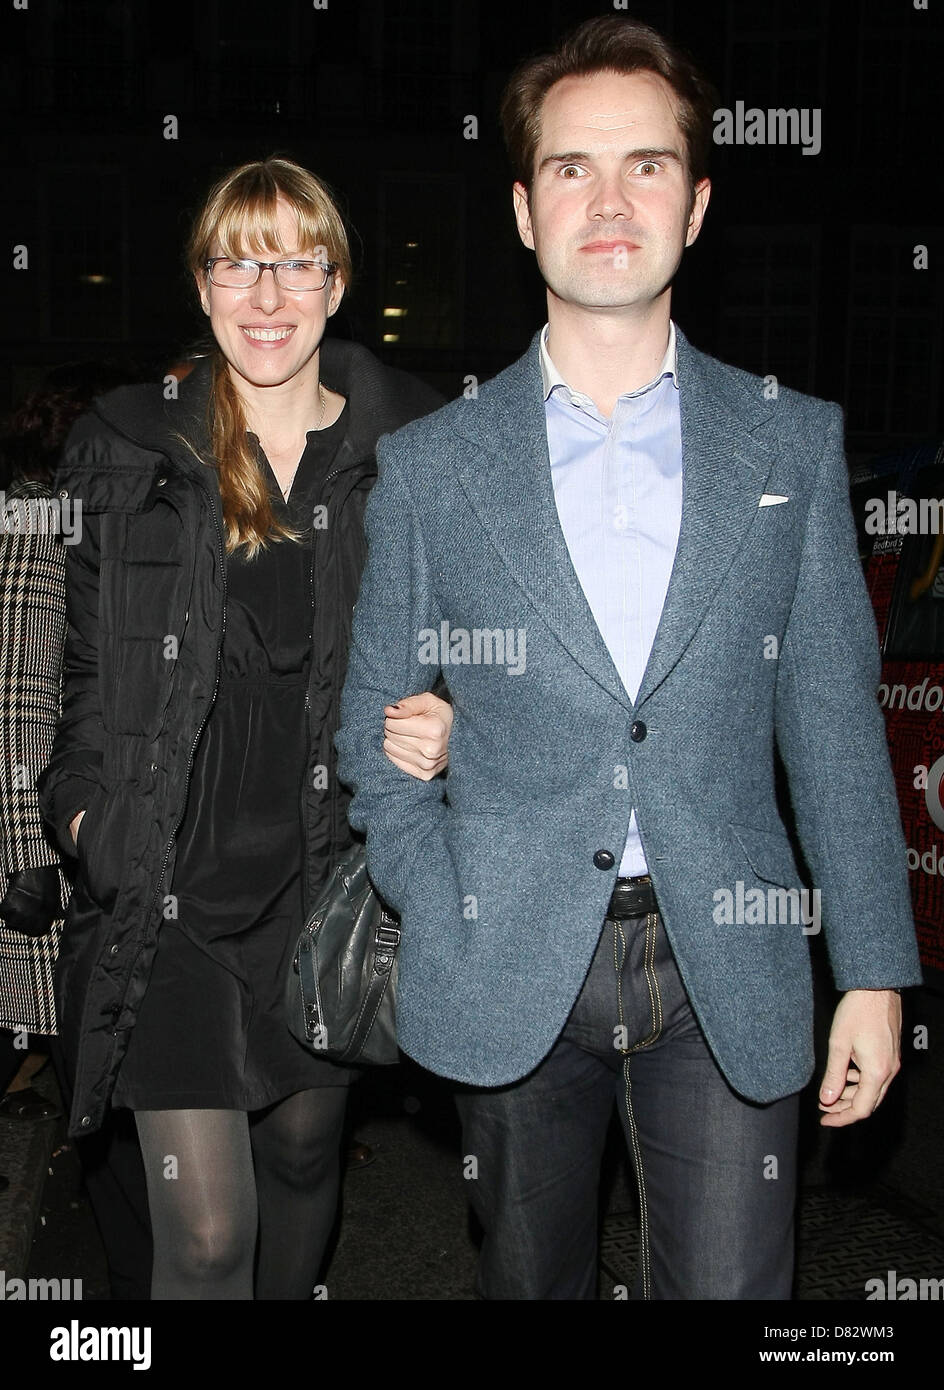 Jimmy Carr High Resolution Stock Photography And Images Alamy Select from premium karoline copping of the highest quality. https www alamy com stock photo jimmy carr and karoline copping leaving nobu restaurant london england 56612419 html